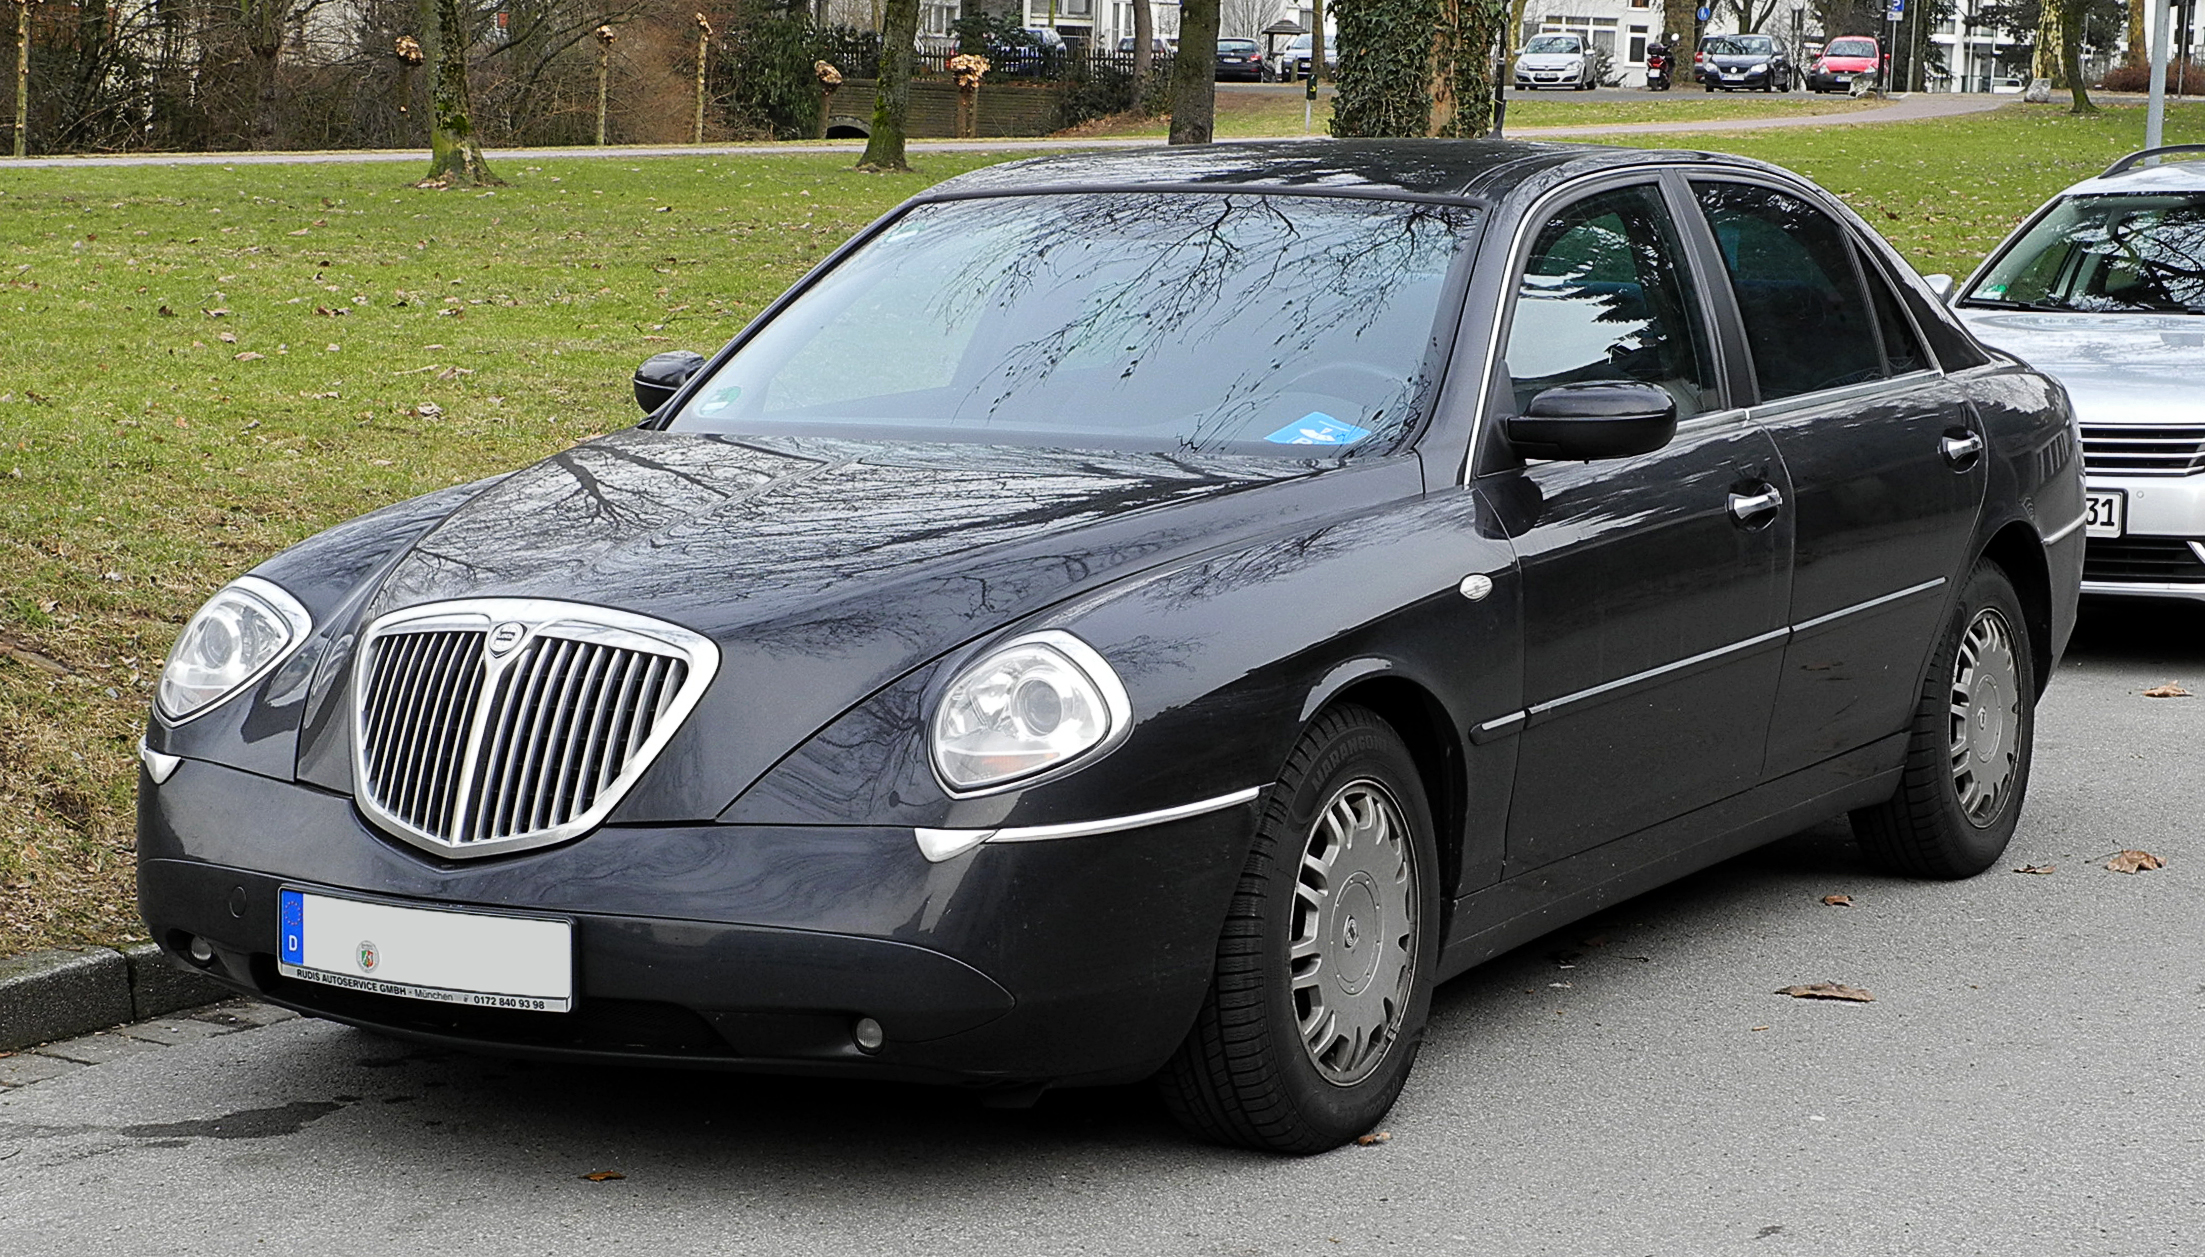 pictures lancia thesis 2001 lancia thesis 24 jtd automobile specifications & information technical data and performance, fuel economy figures, dimensions and weights, engine power and.